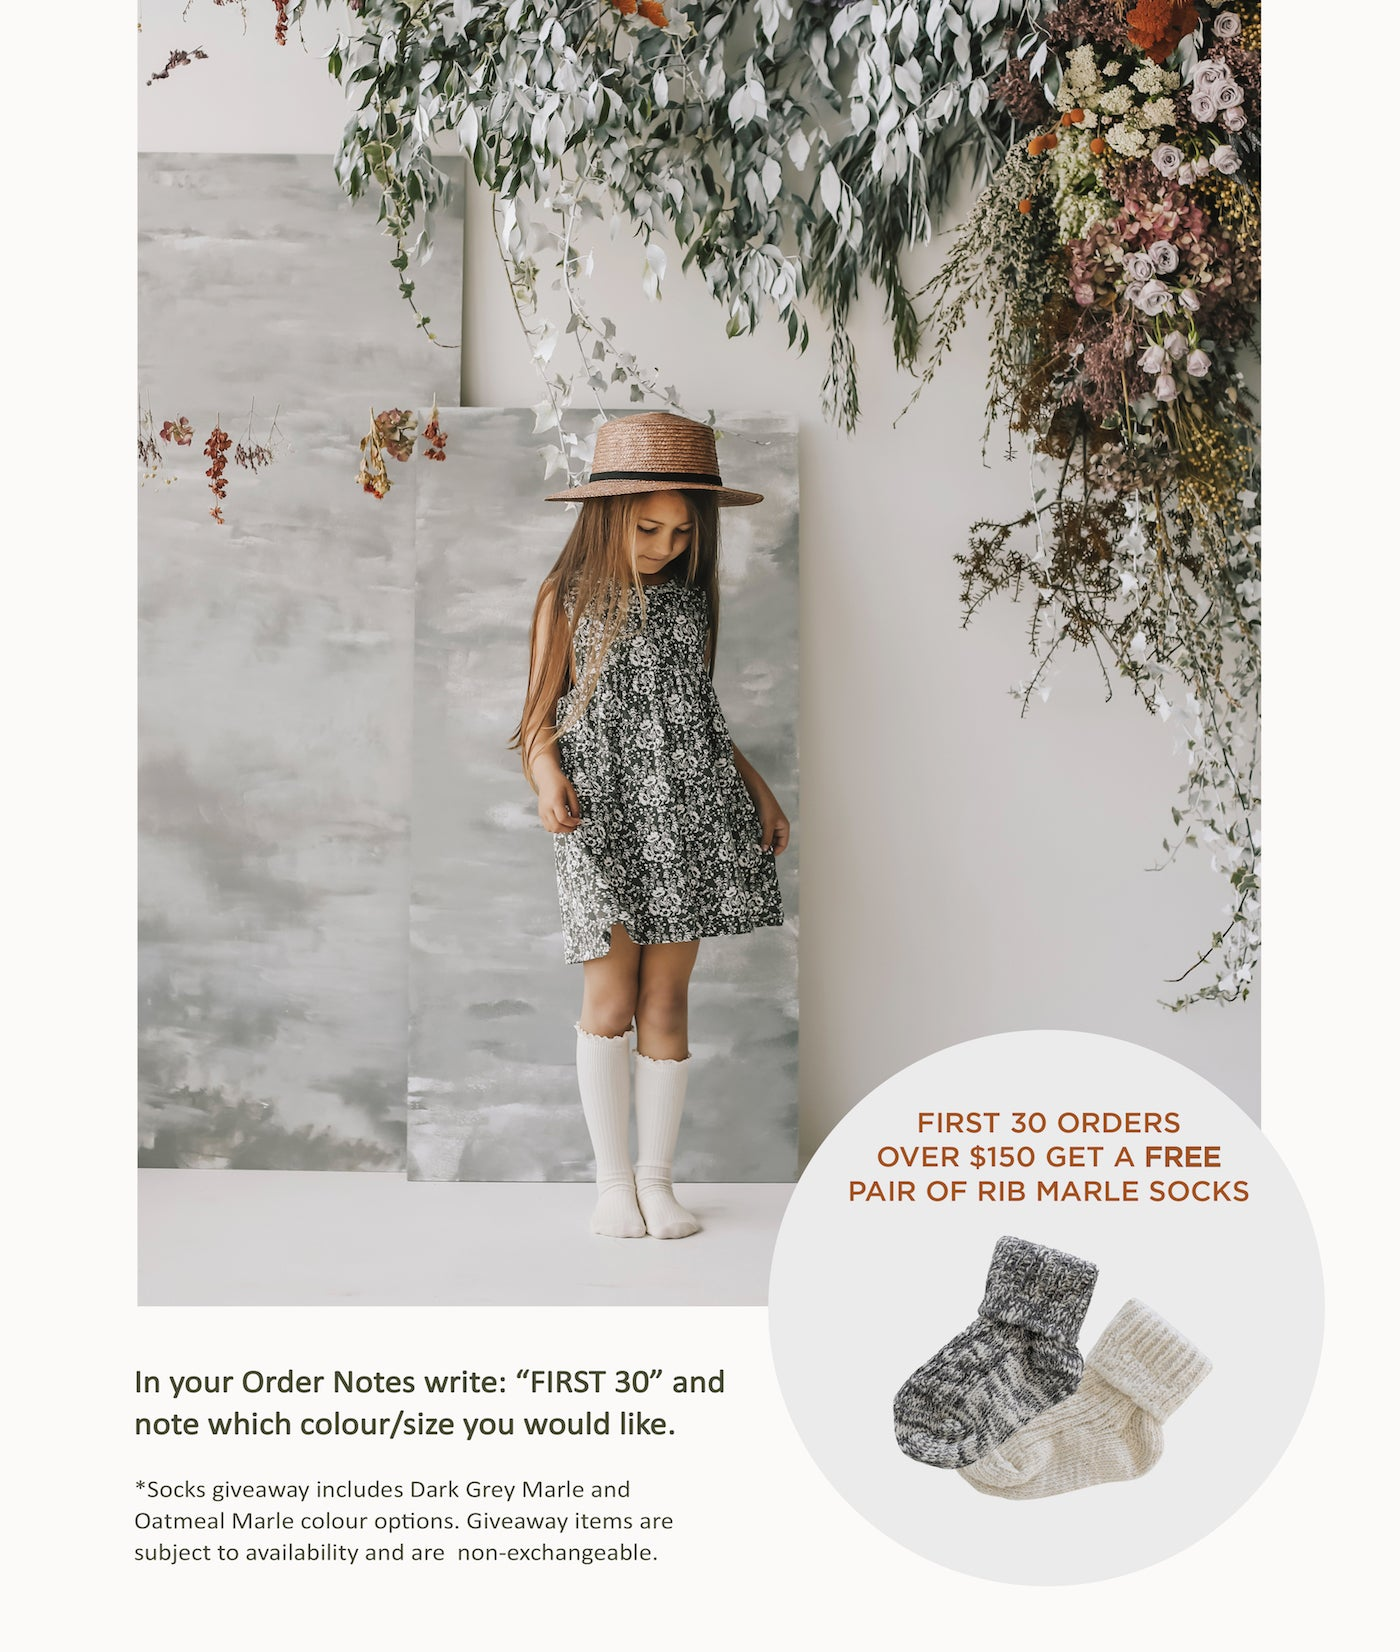 Paper Plane - Jamie Kay - Kids and Baby Clothing - Mount Maunganui Stockist